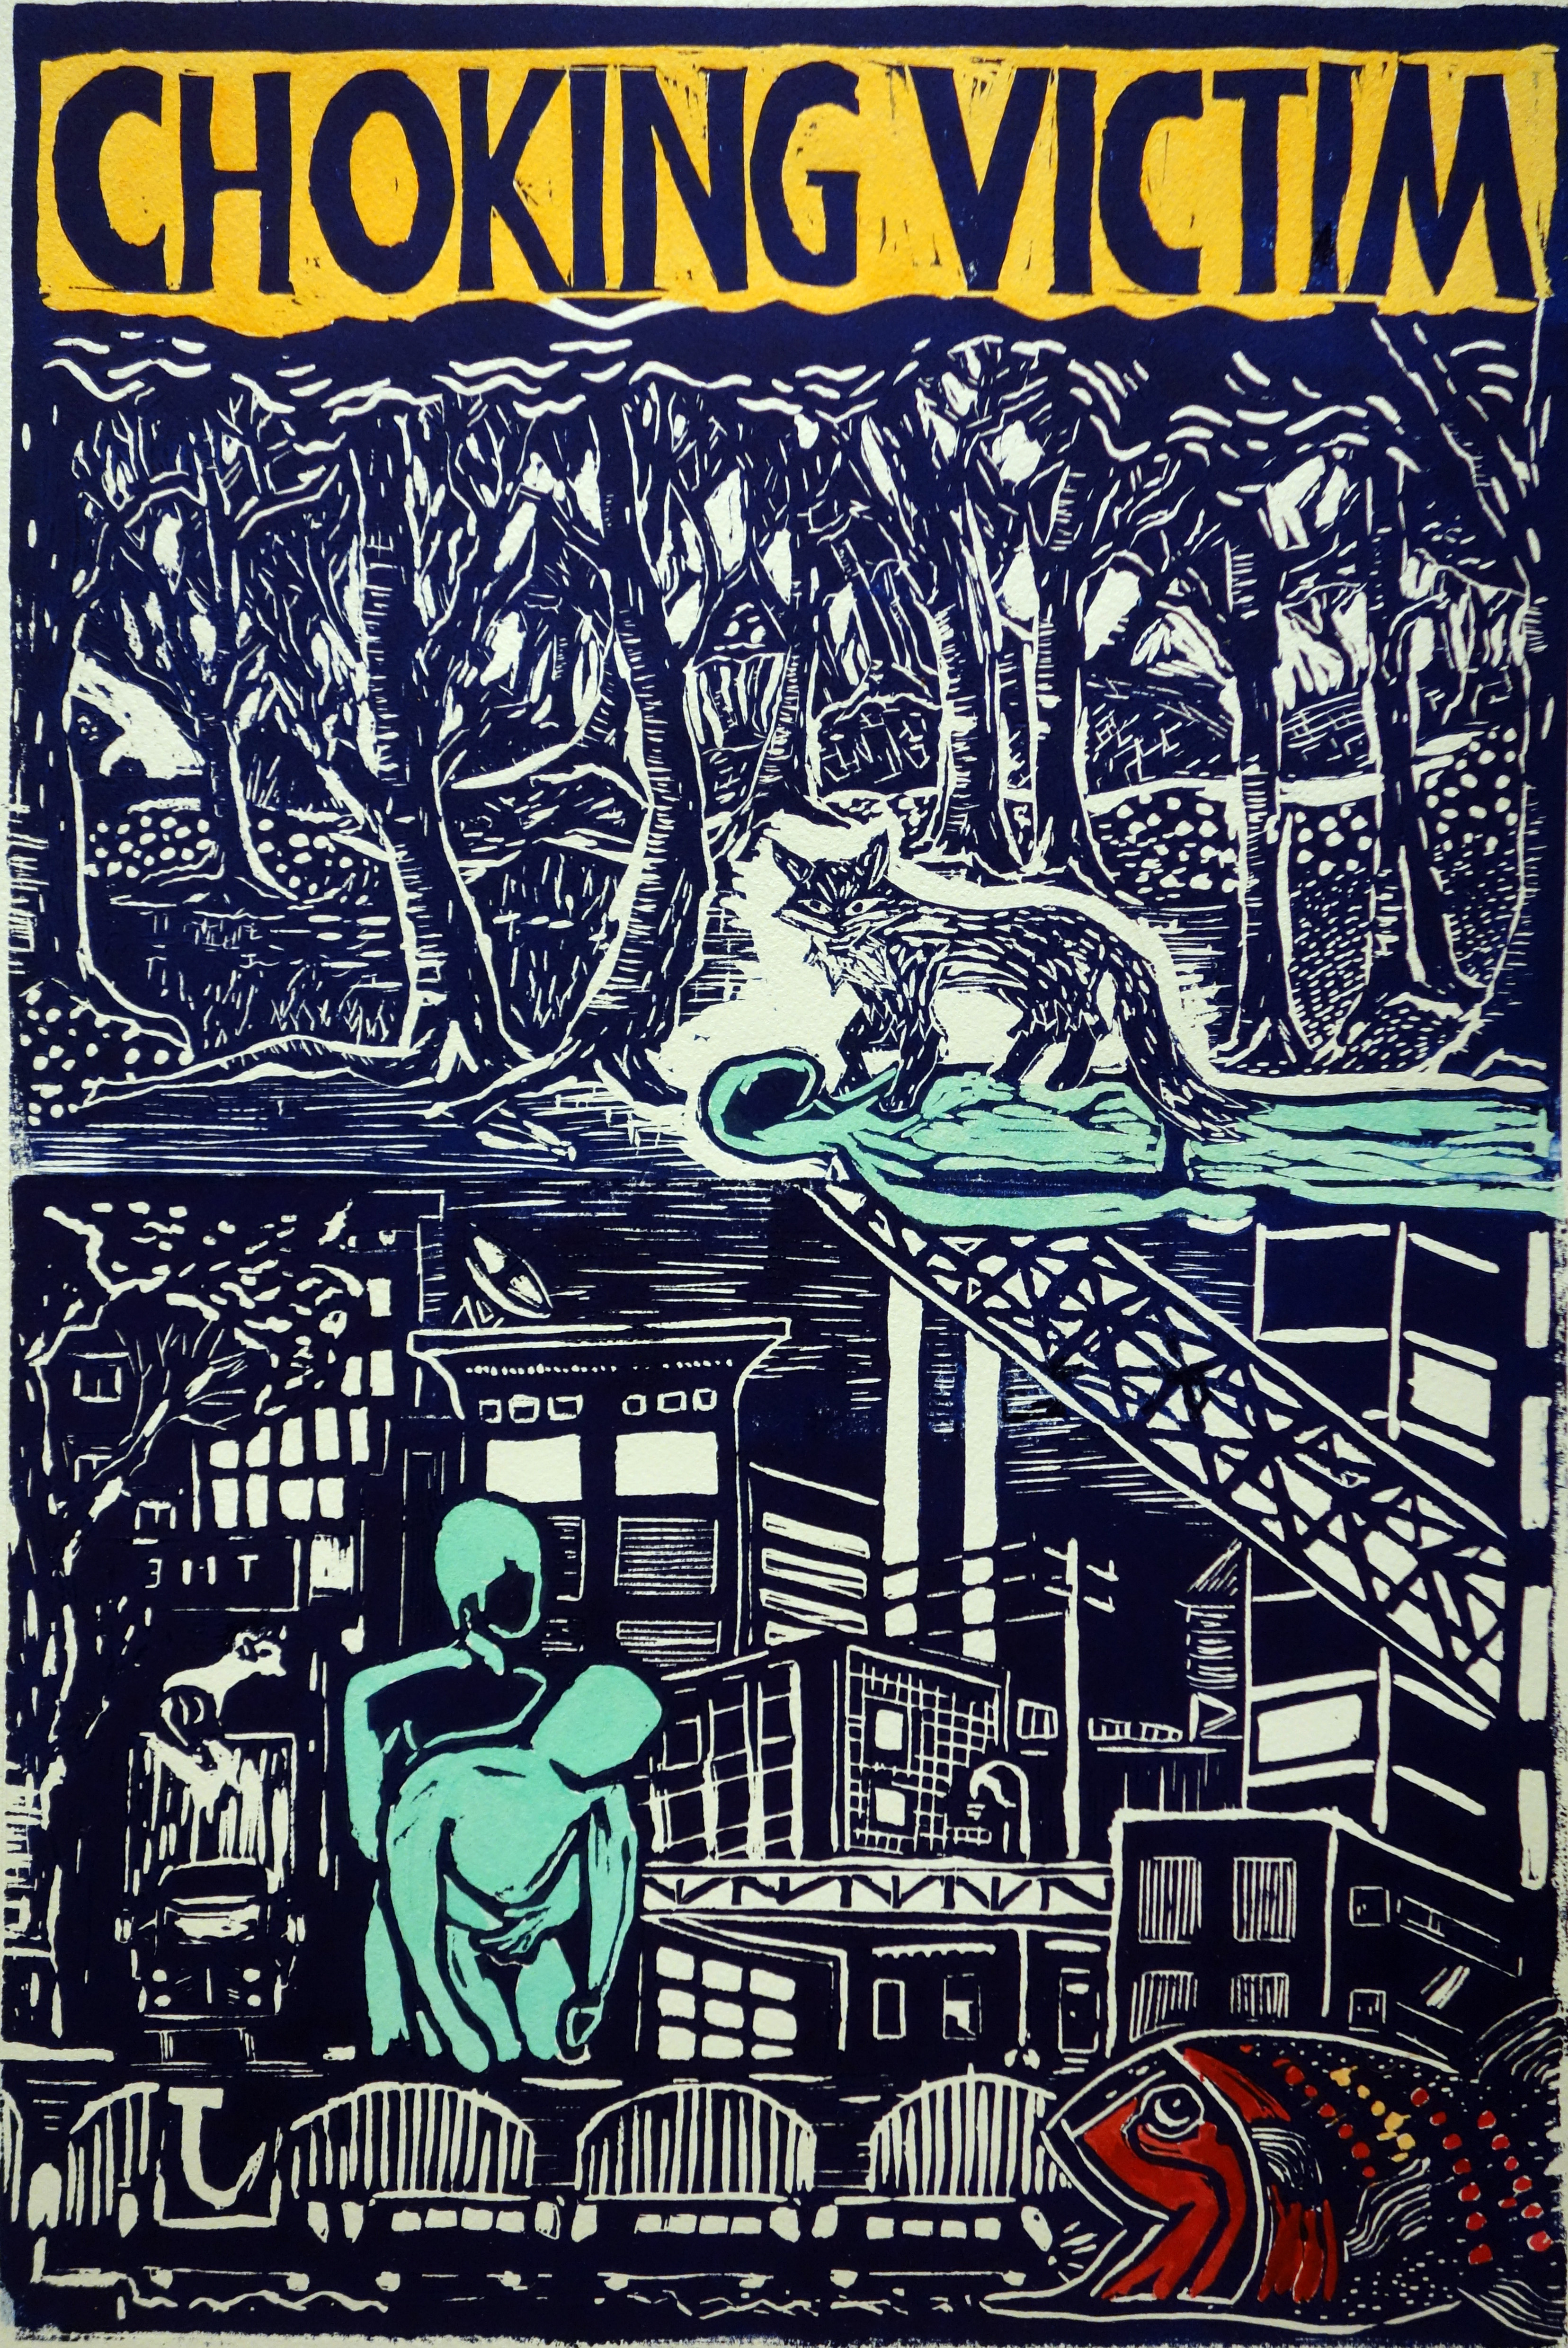 View Image Details CHOKING VICTIM linocut 12 x 18 inches